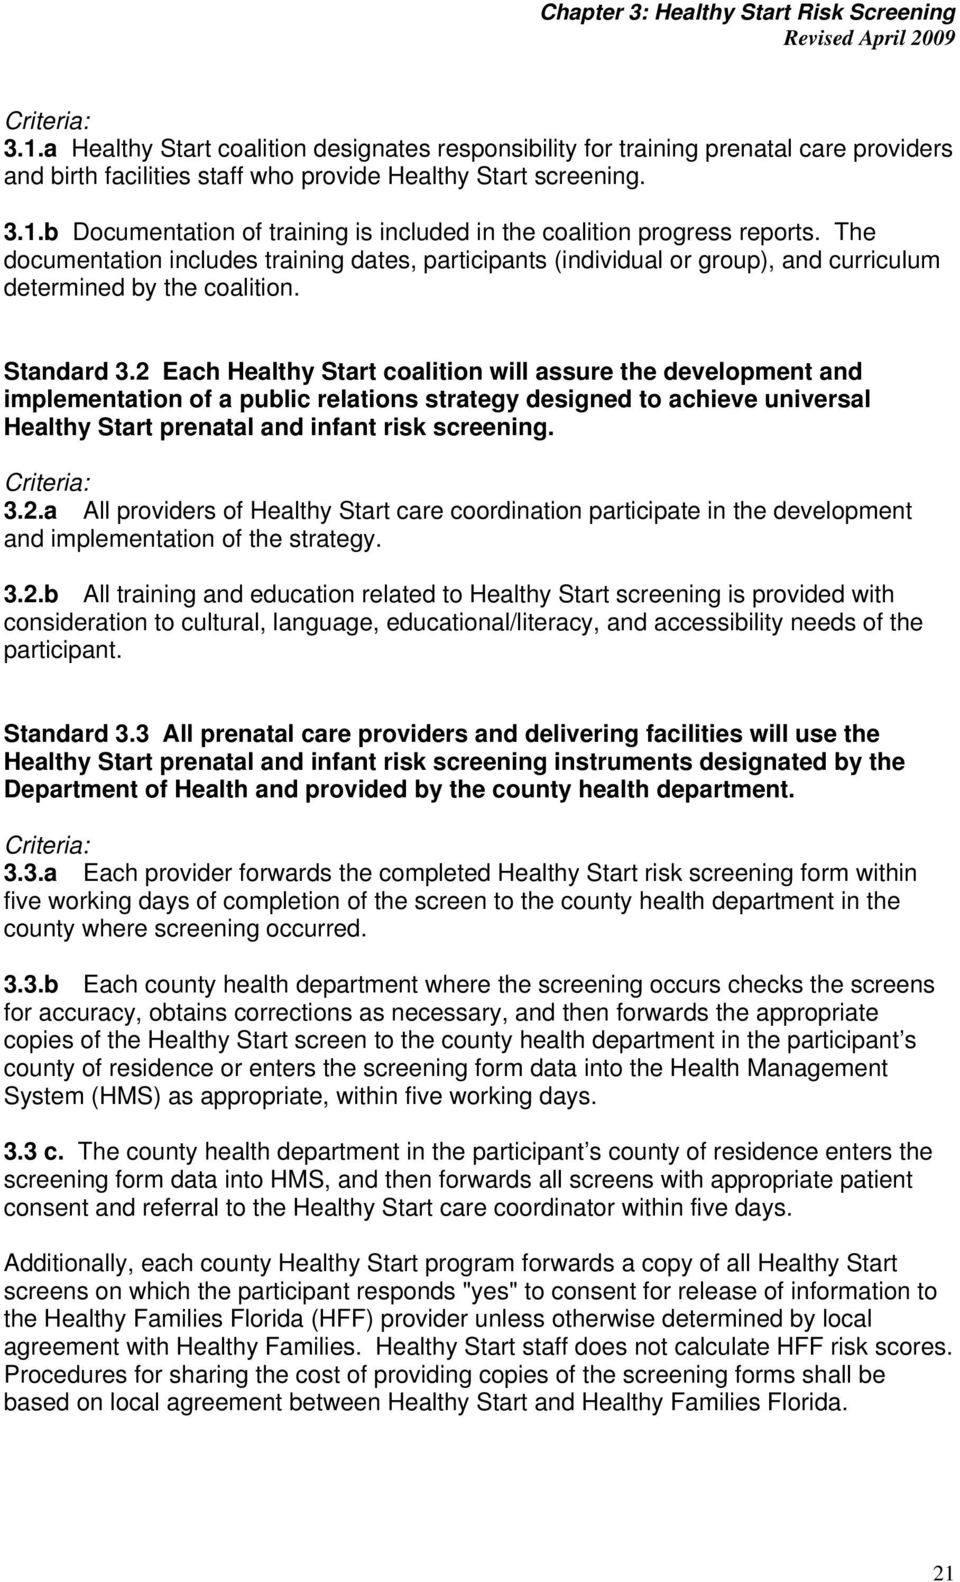 2 Each Healthy Start coalition will assure the development and implementation of a public relations strategy designed to achieve universal Healthy Start prenatal and infant risk screening.